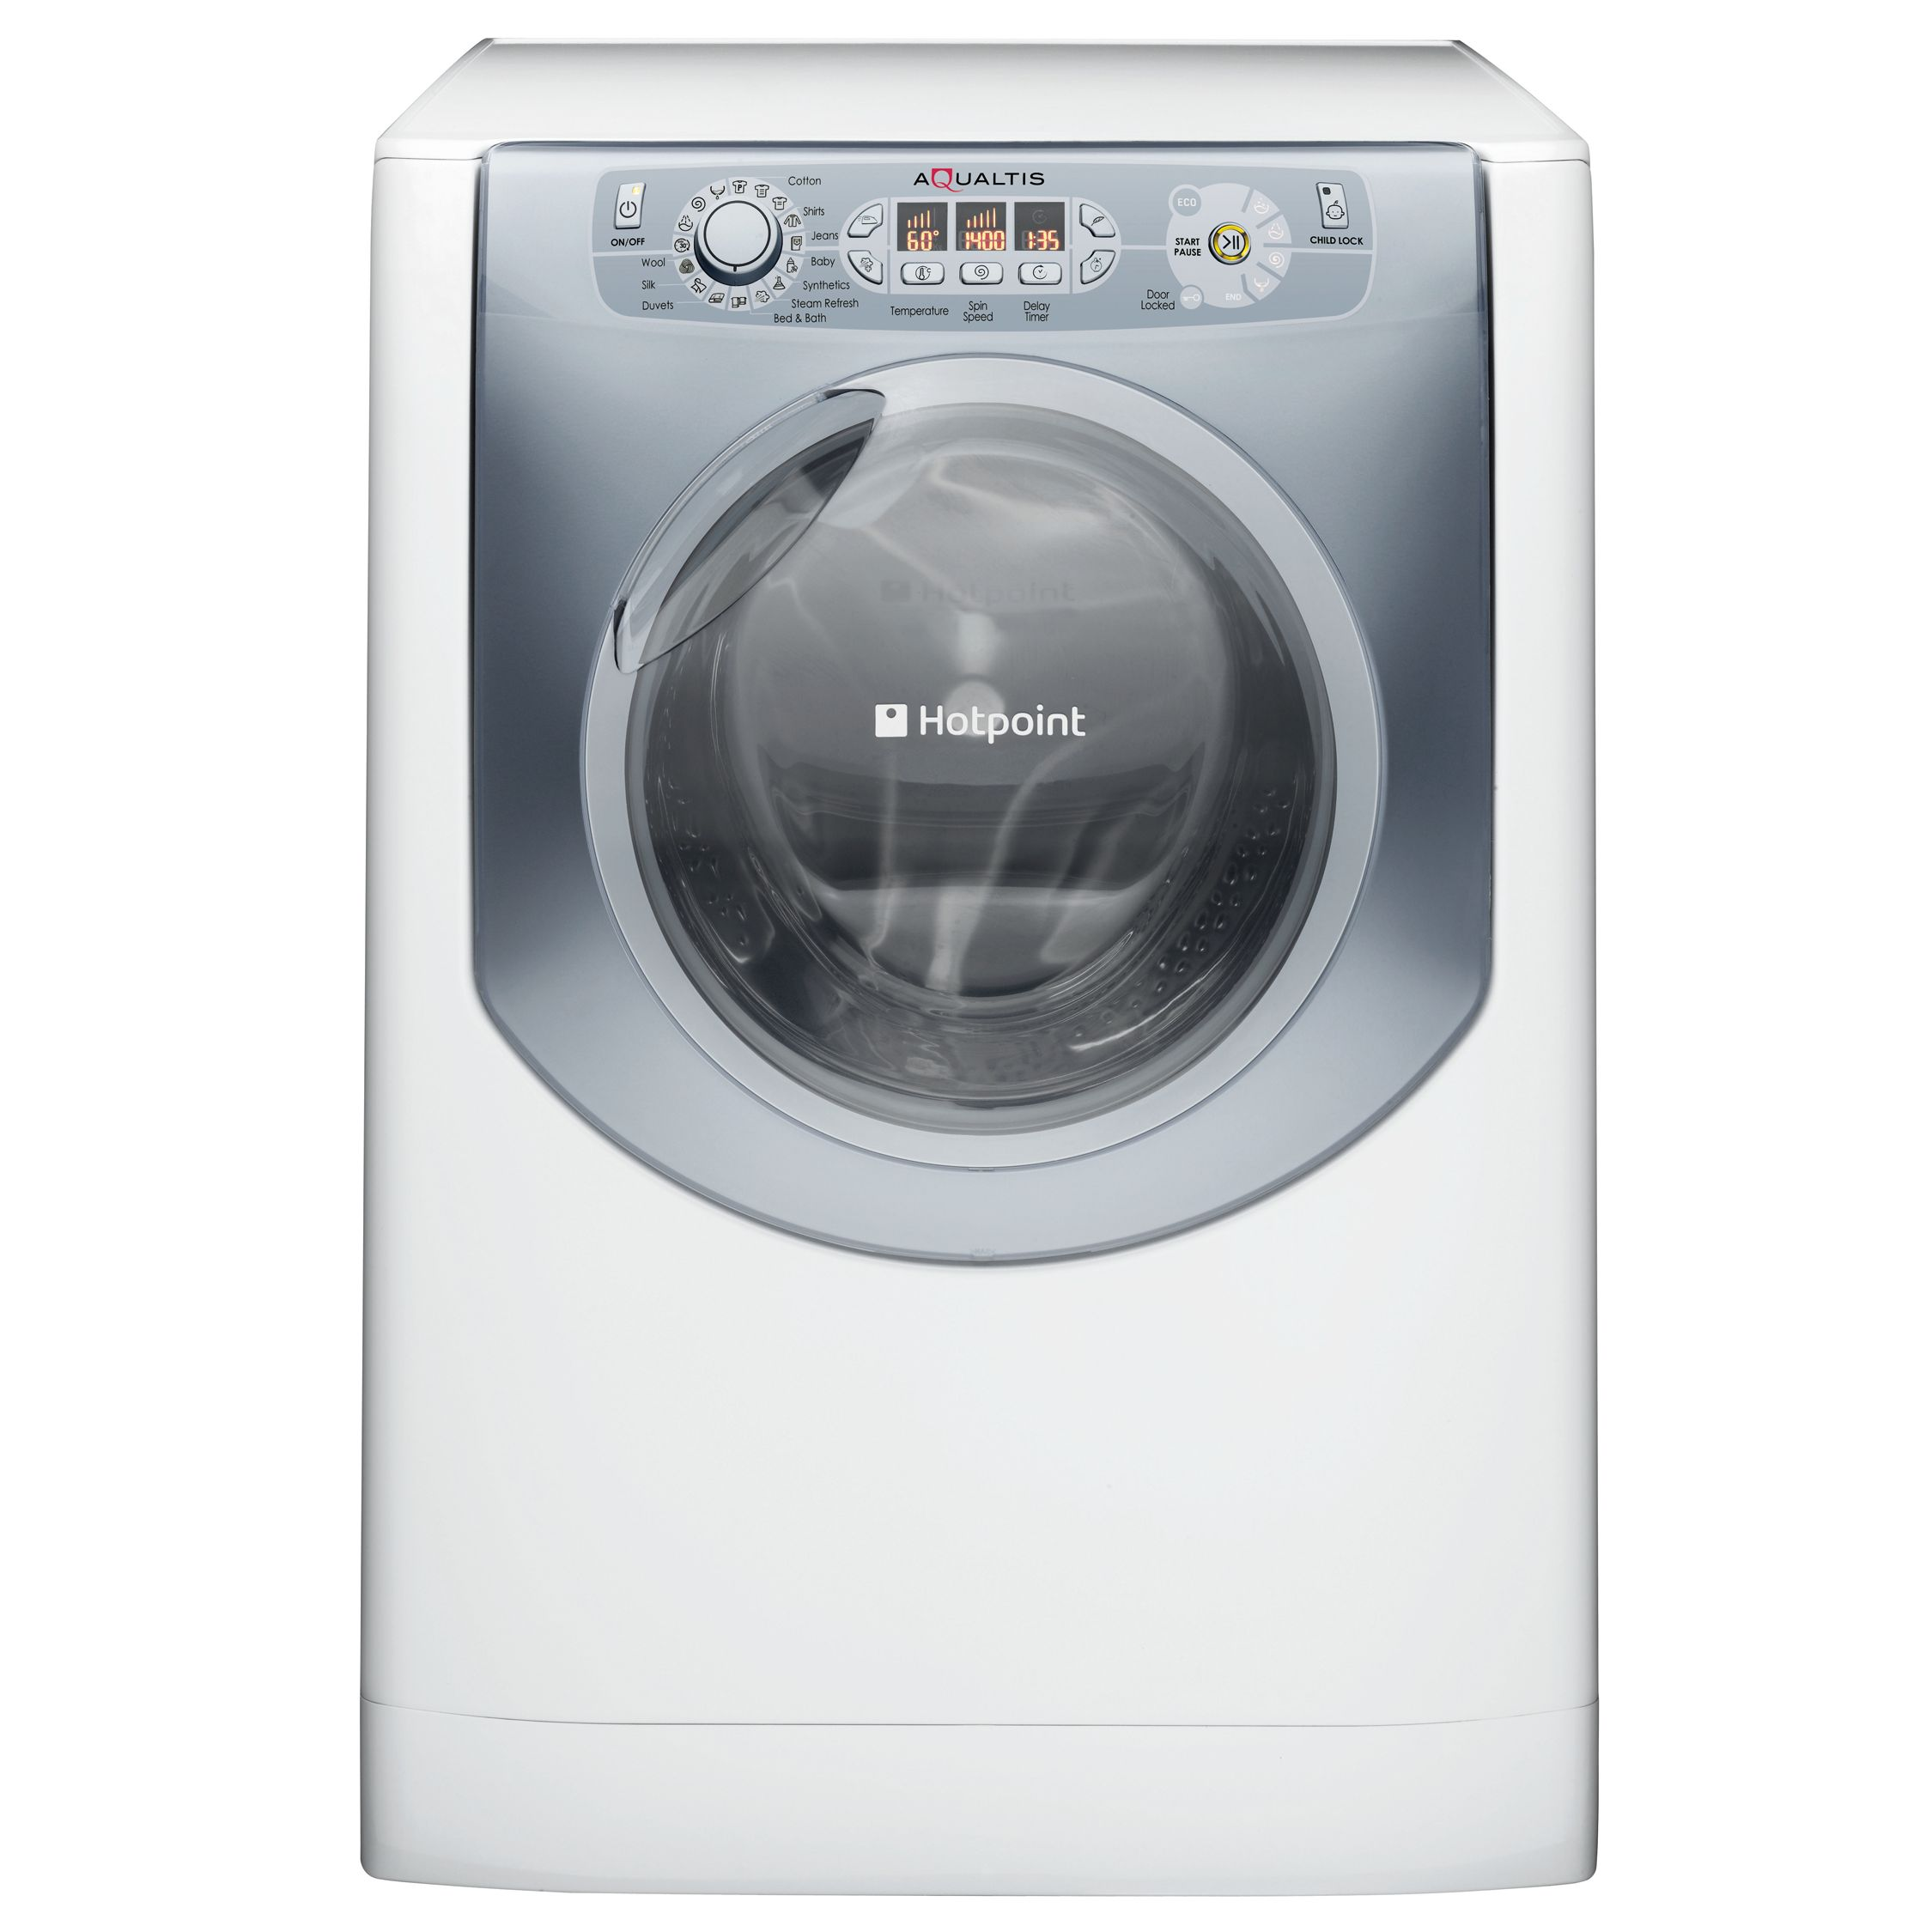 Hotpoint Aqualtis AQ9F492UV Washing Machine, White